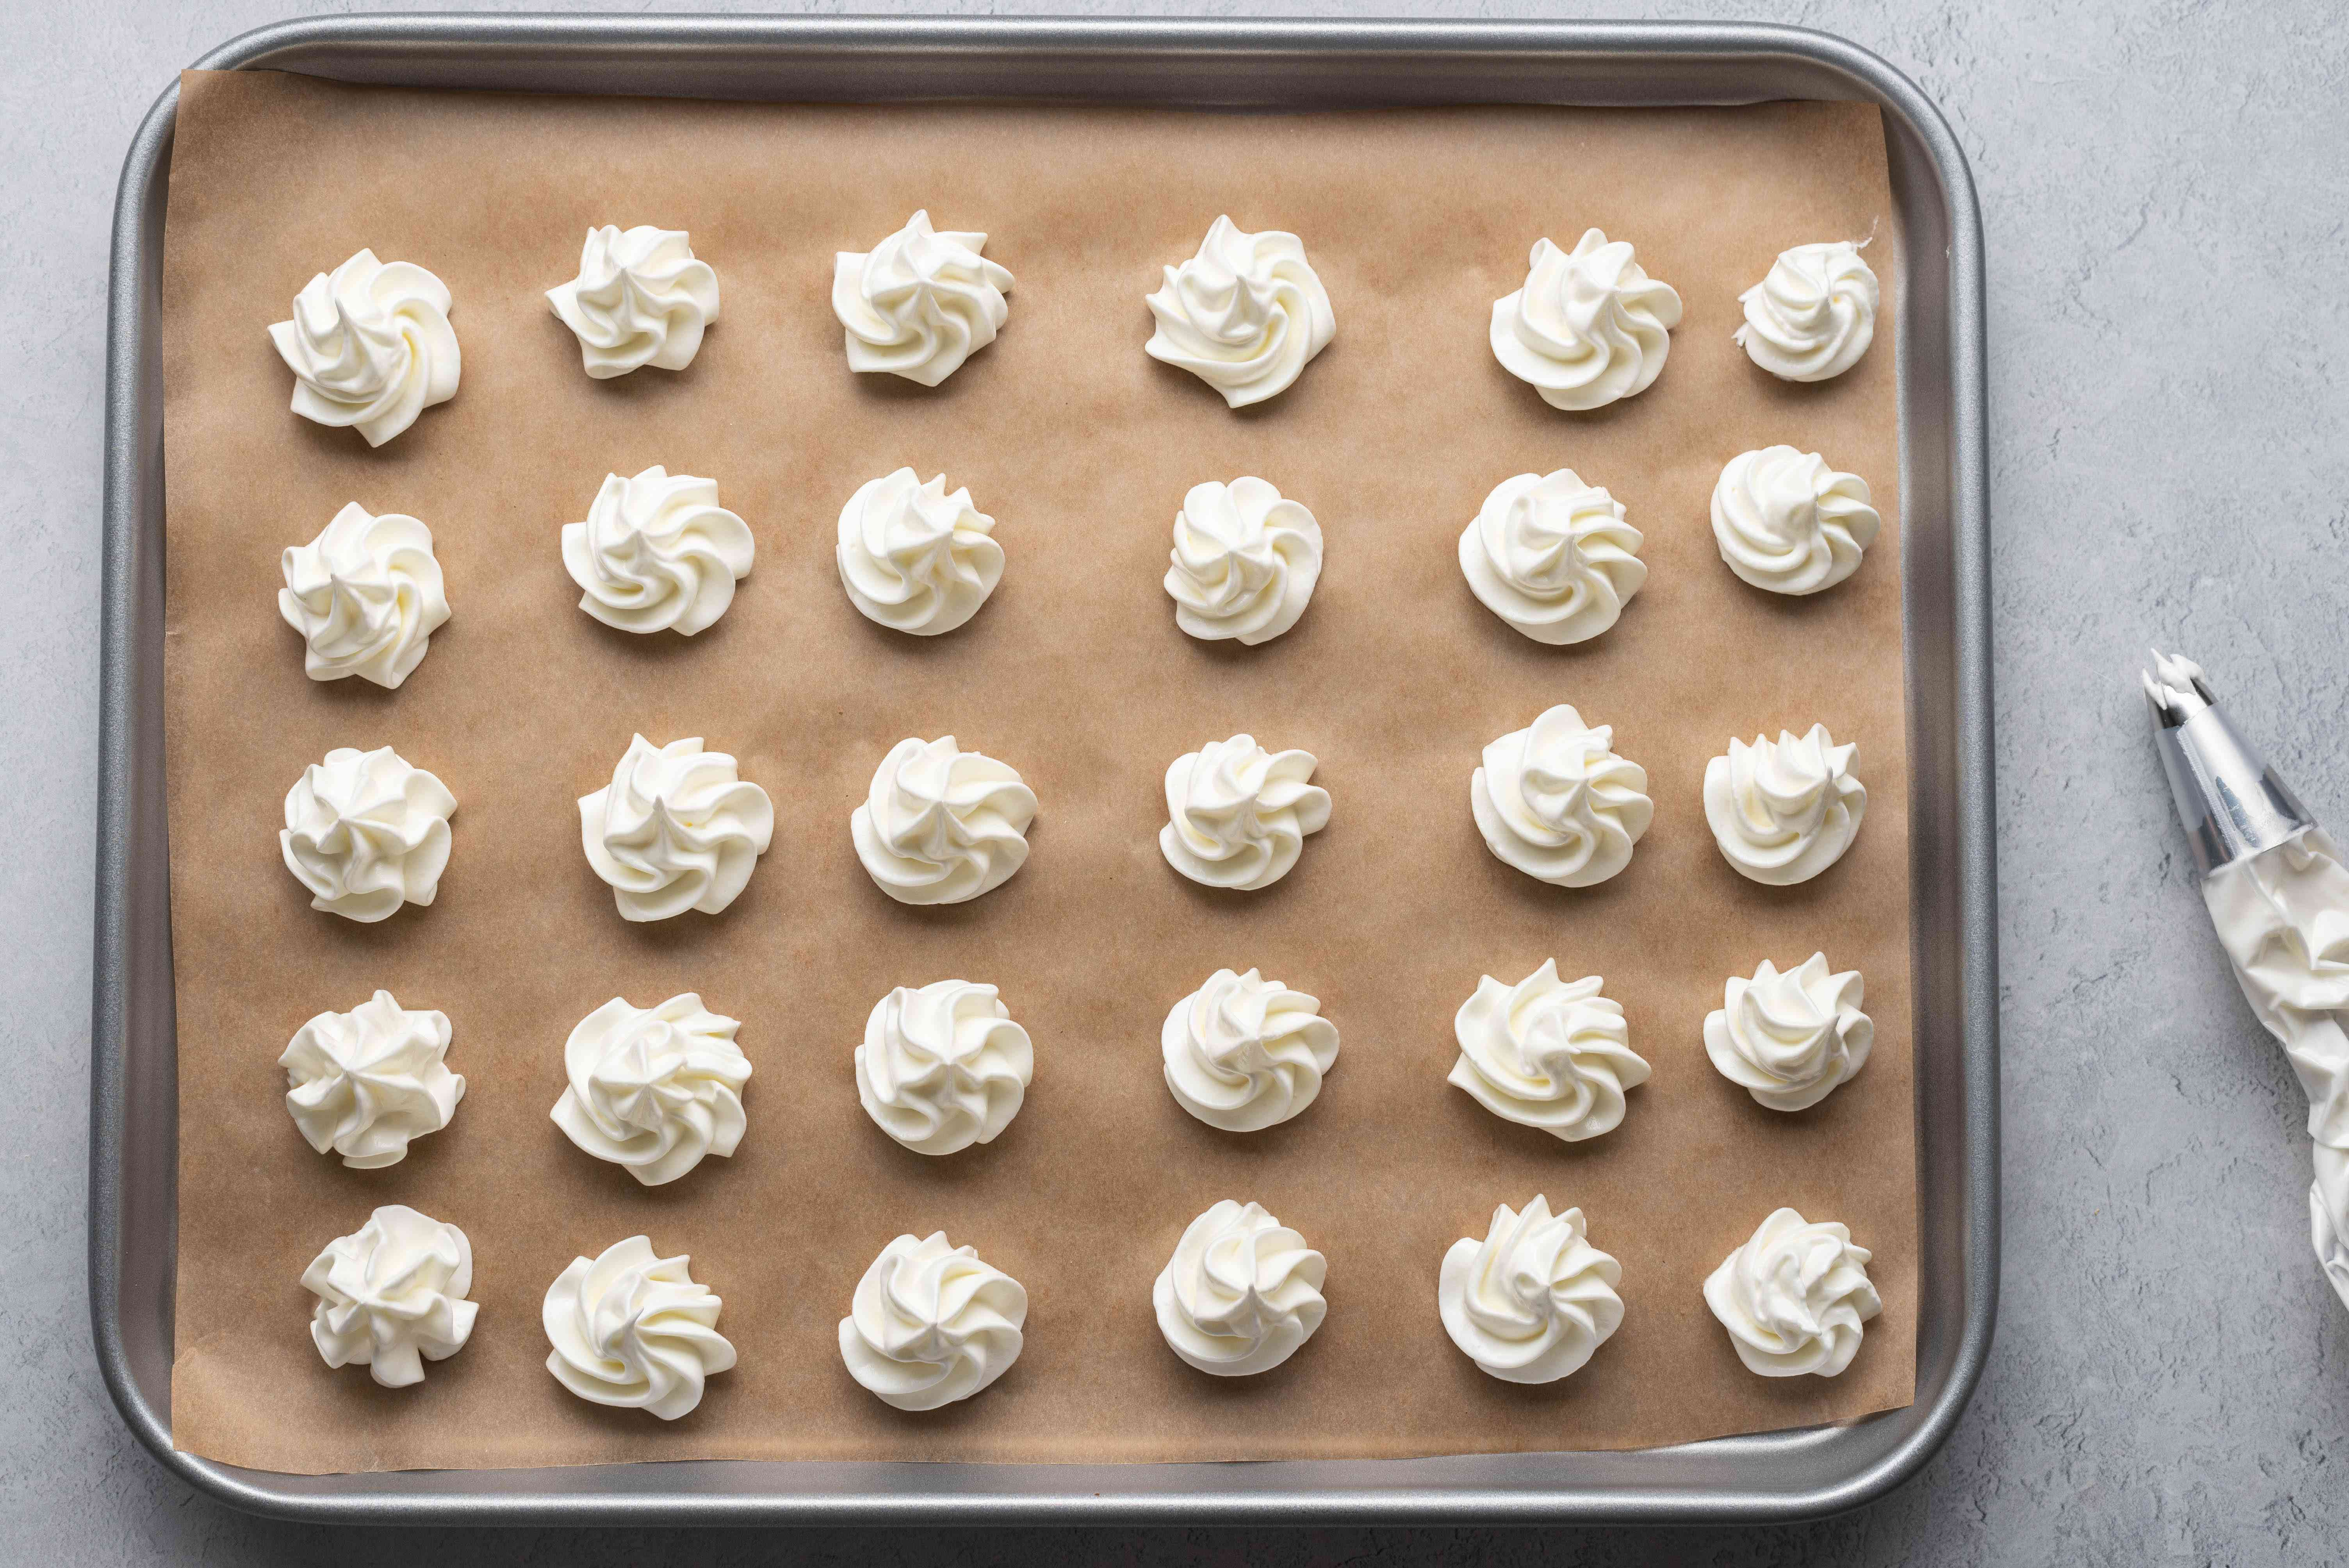 A baking sheet with piped meringue swirls